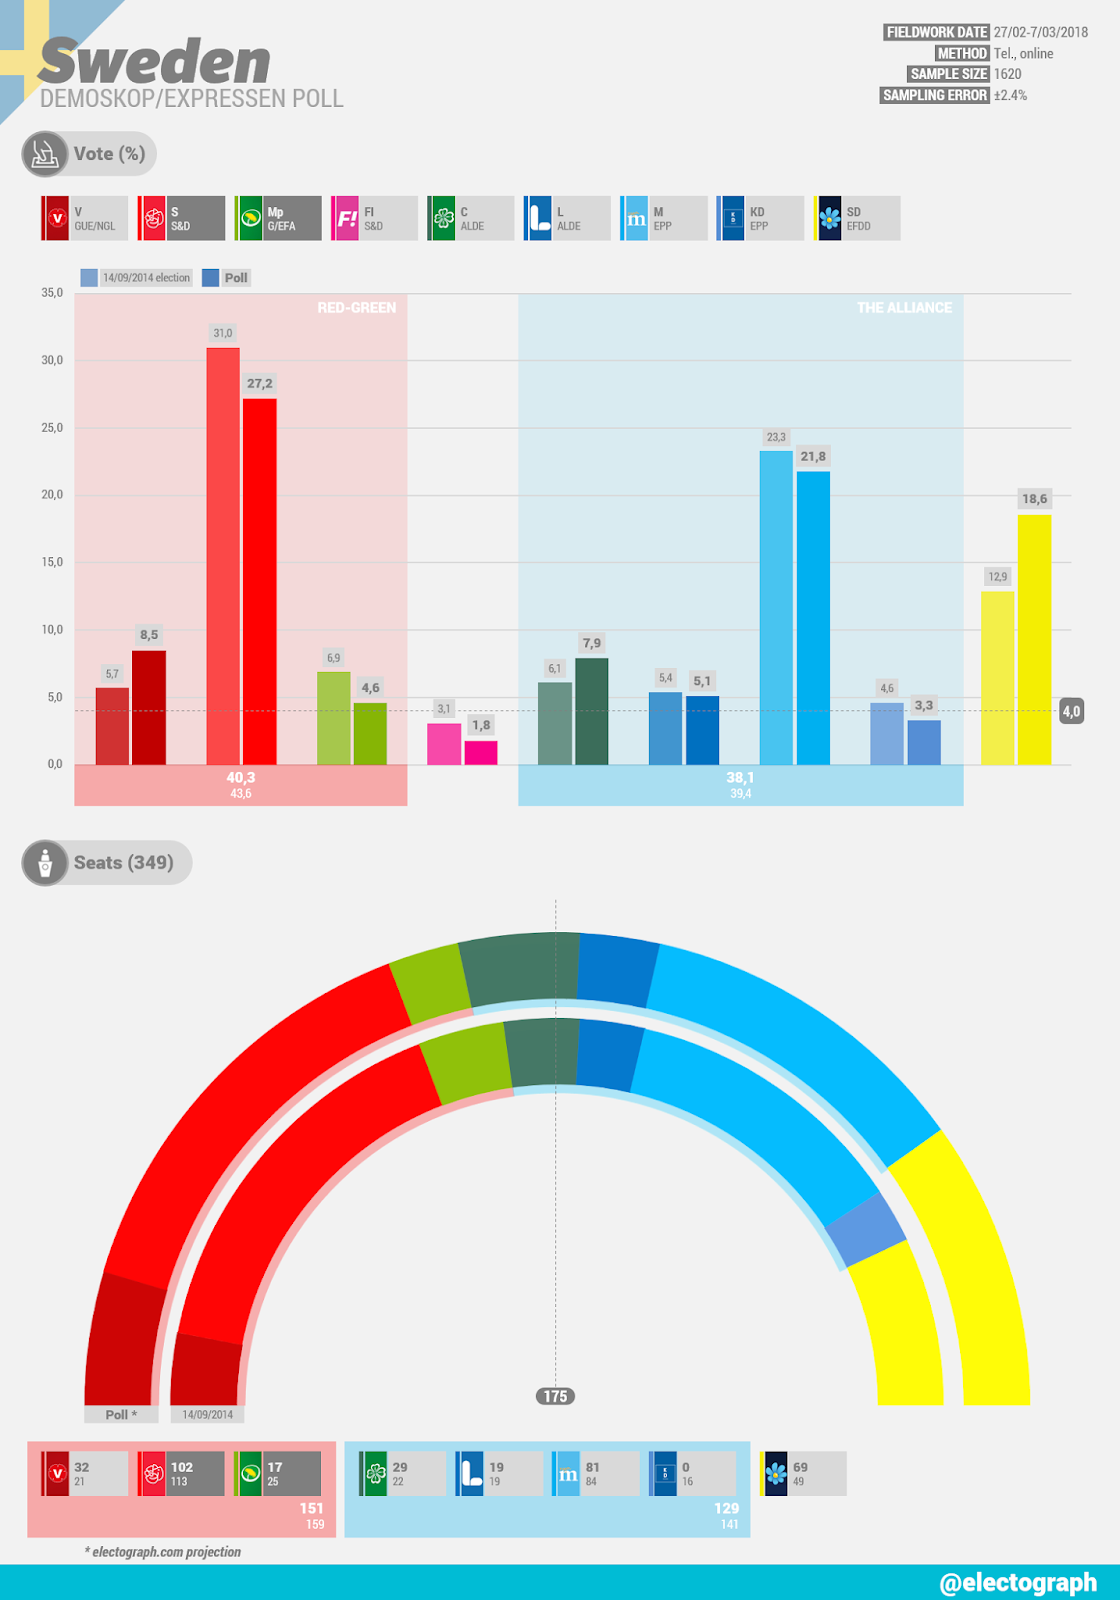 SWEDEN Demoskop poll chart for Expressen, March 2018